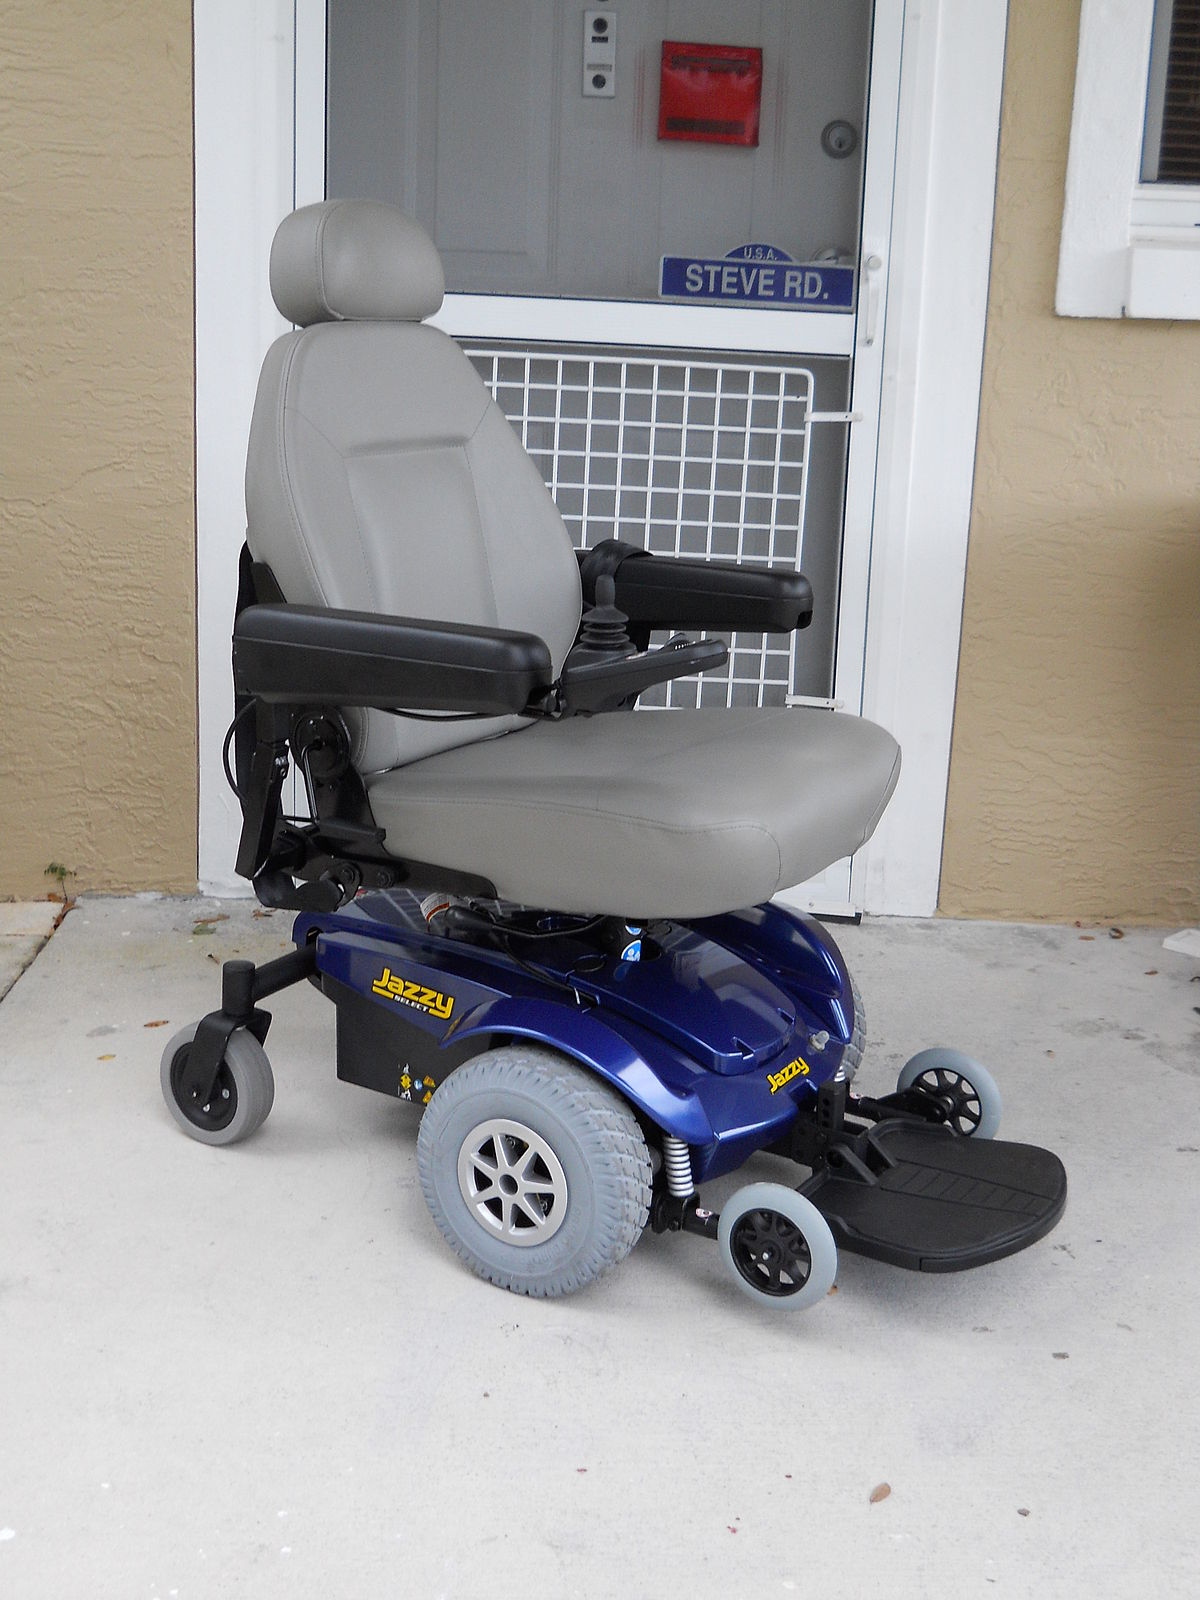 Motorized wheelchair - Wikipedia